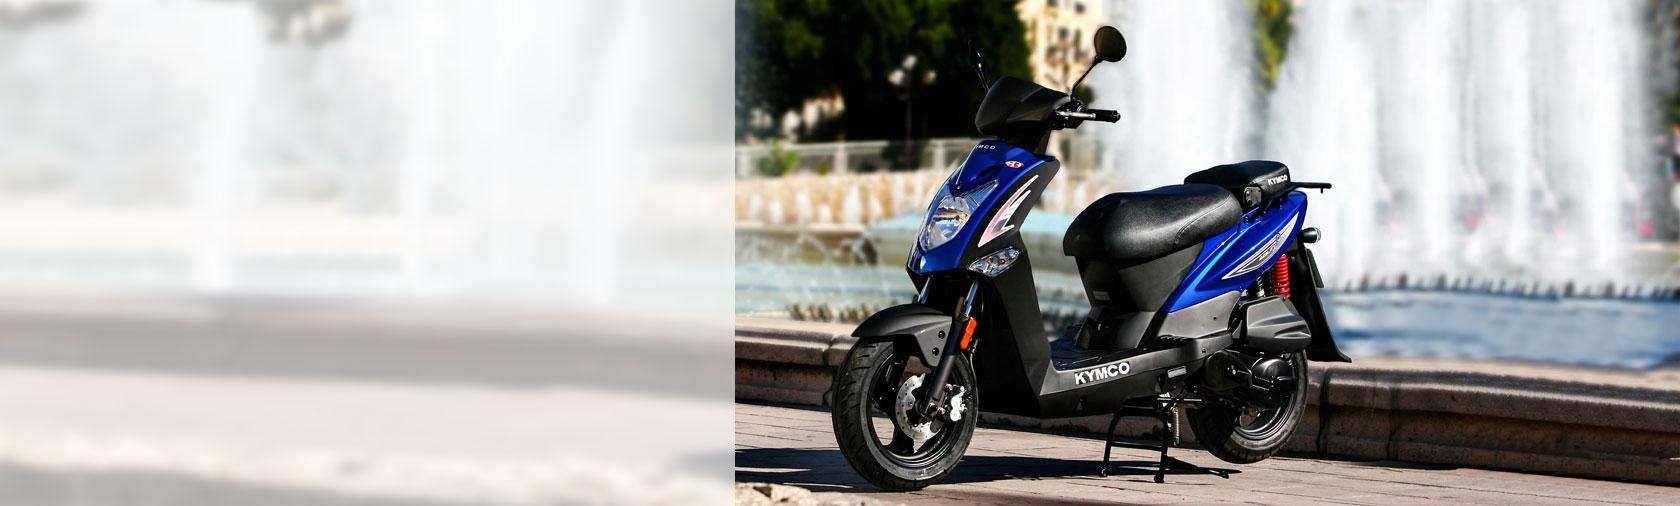 new agility 50 kymco lille concessionnaire scooters motos et quads. Black Bedroom Furniture Sets. Home Design Ideas